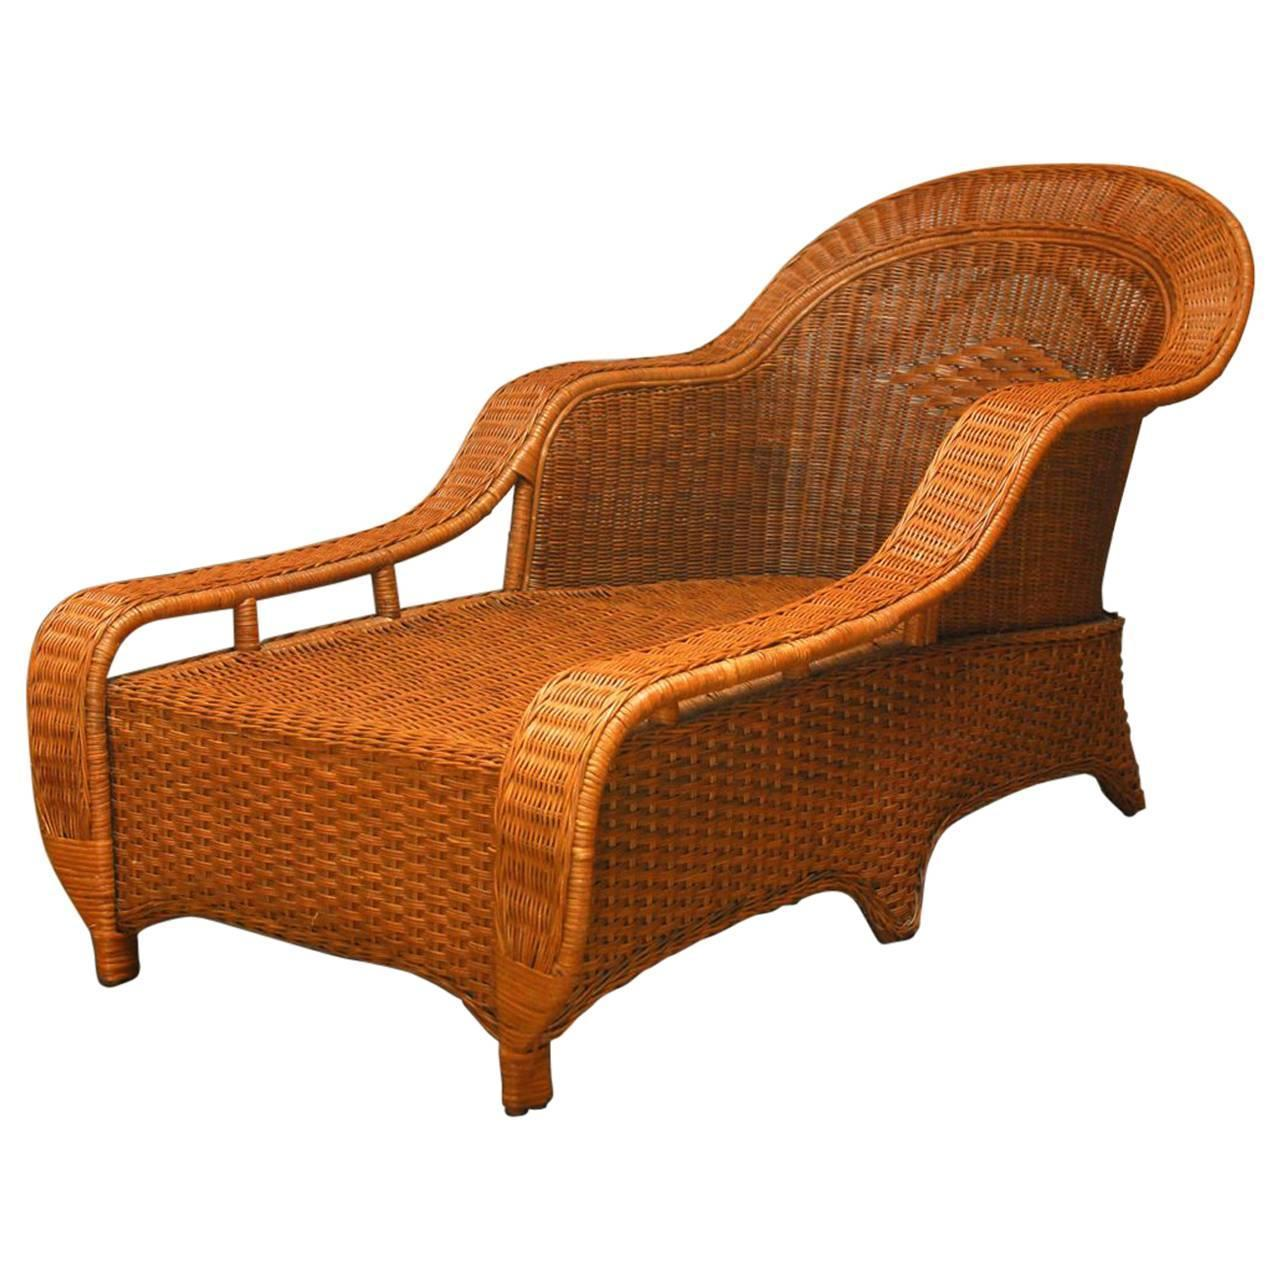 French Chaise Palecek French Style Wicker Chaise Lounge Chairish